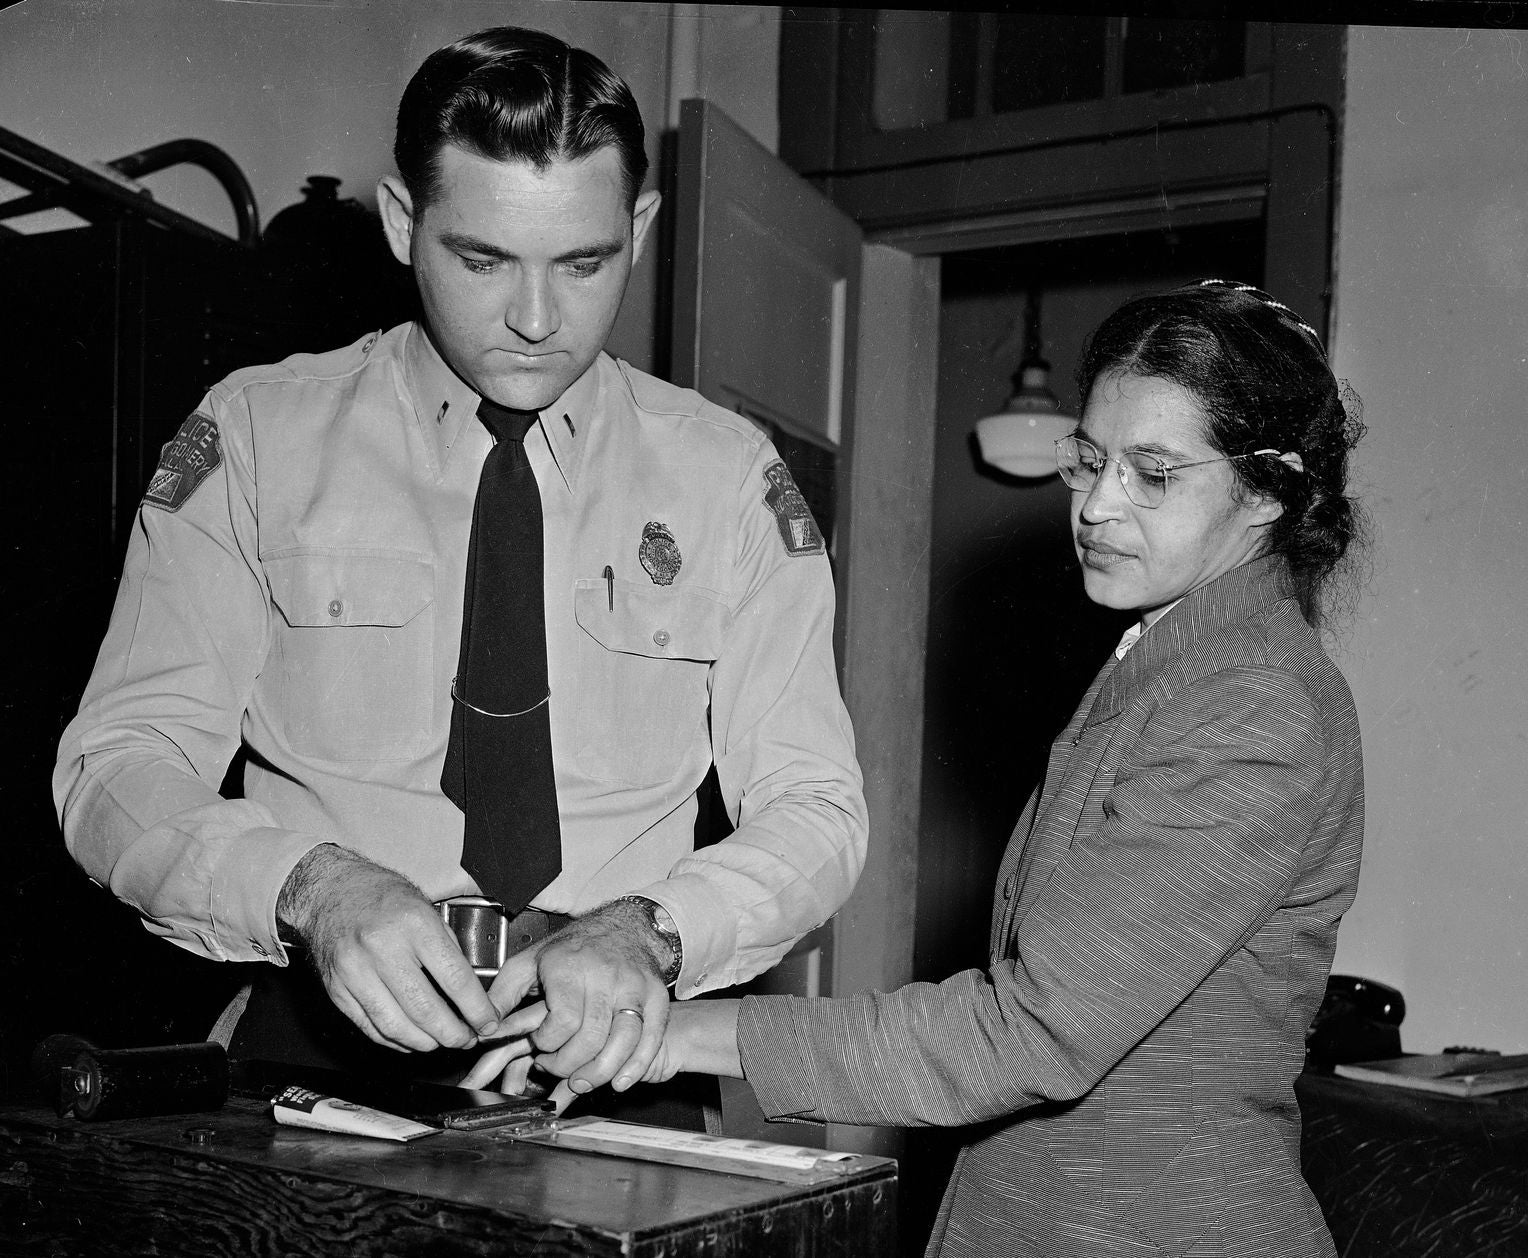 rosa parks is fingerprinted in december 1955 after her arrest. image courtesy of the library of congress.